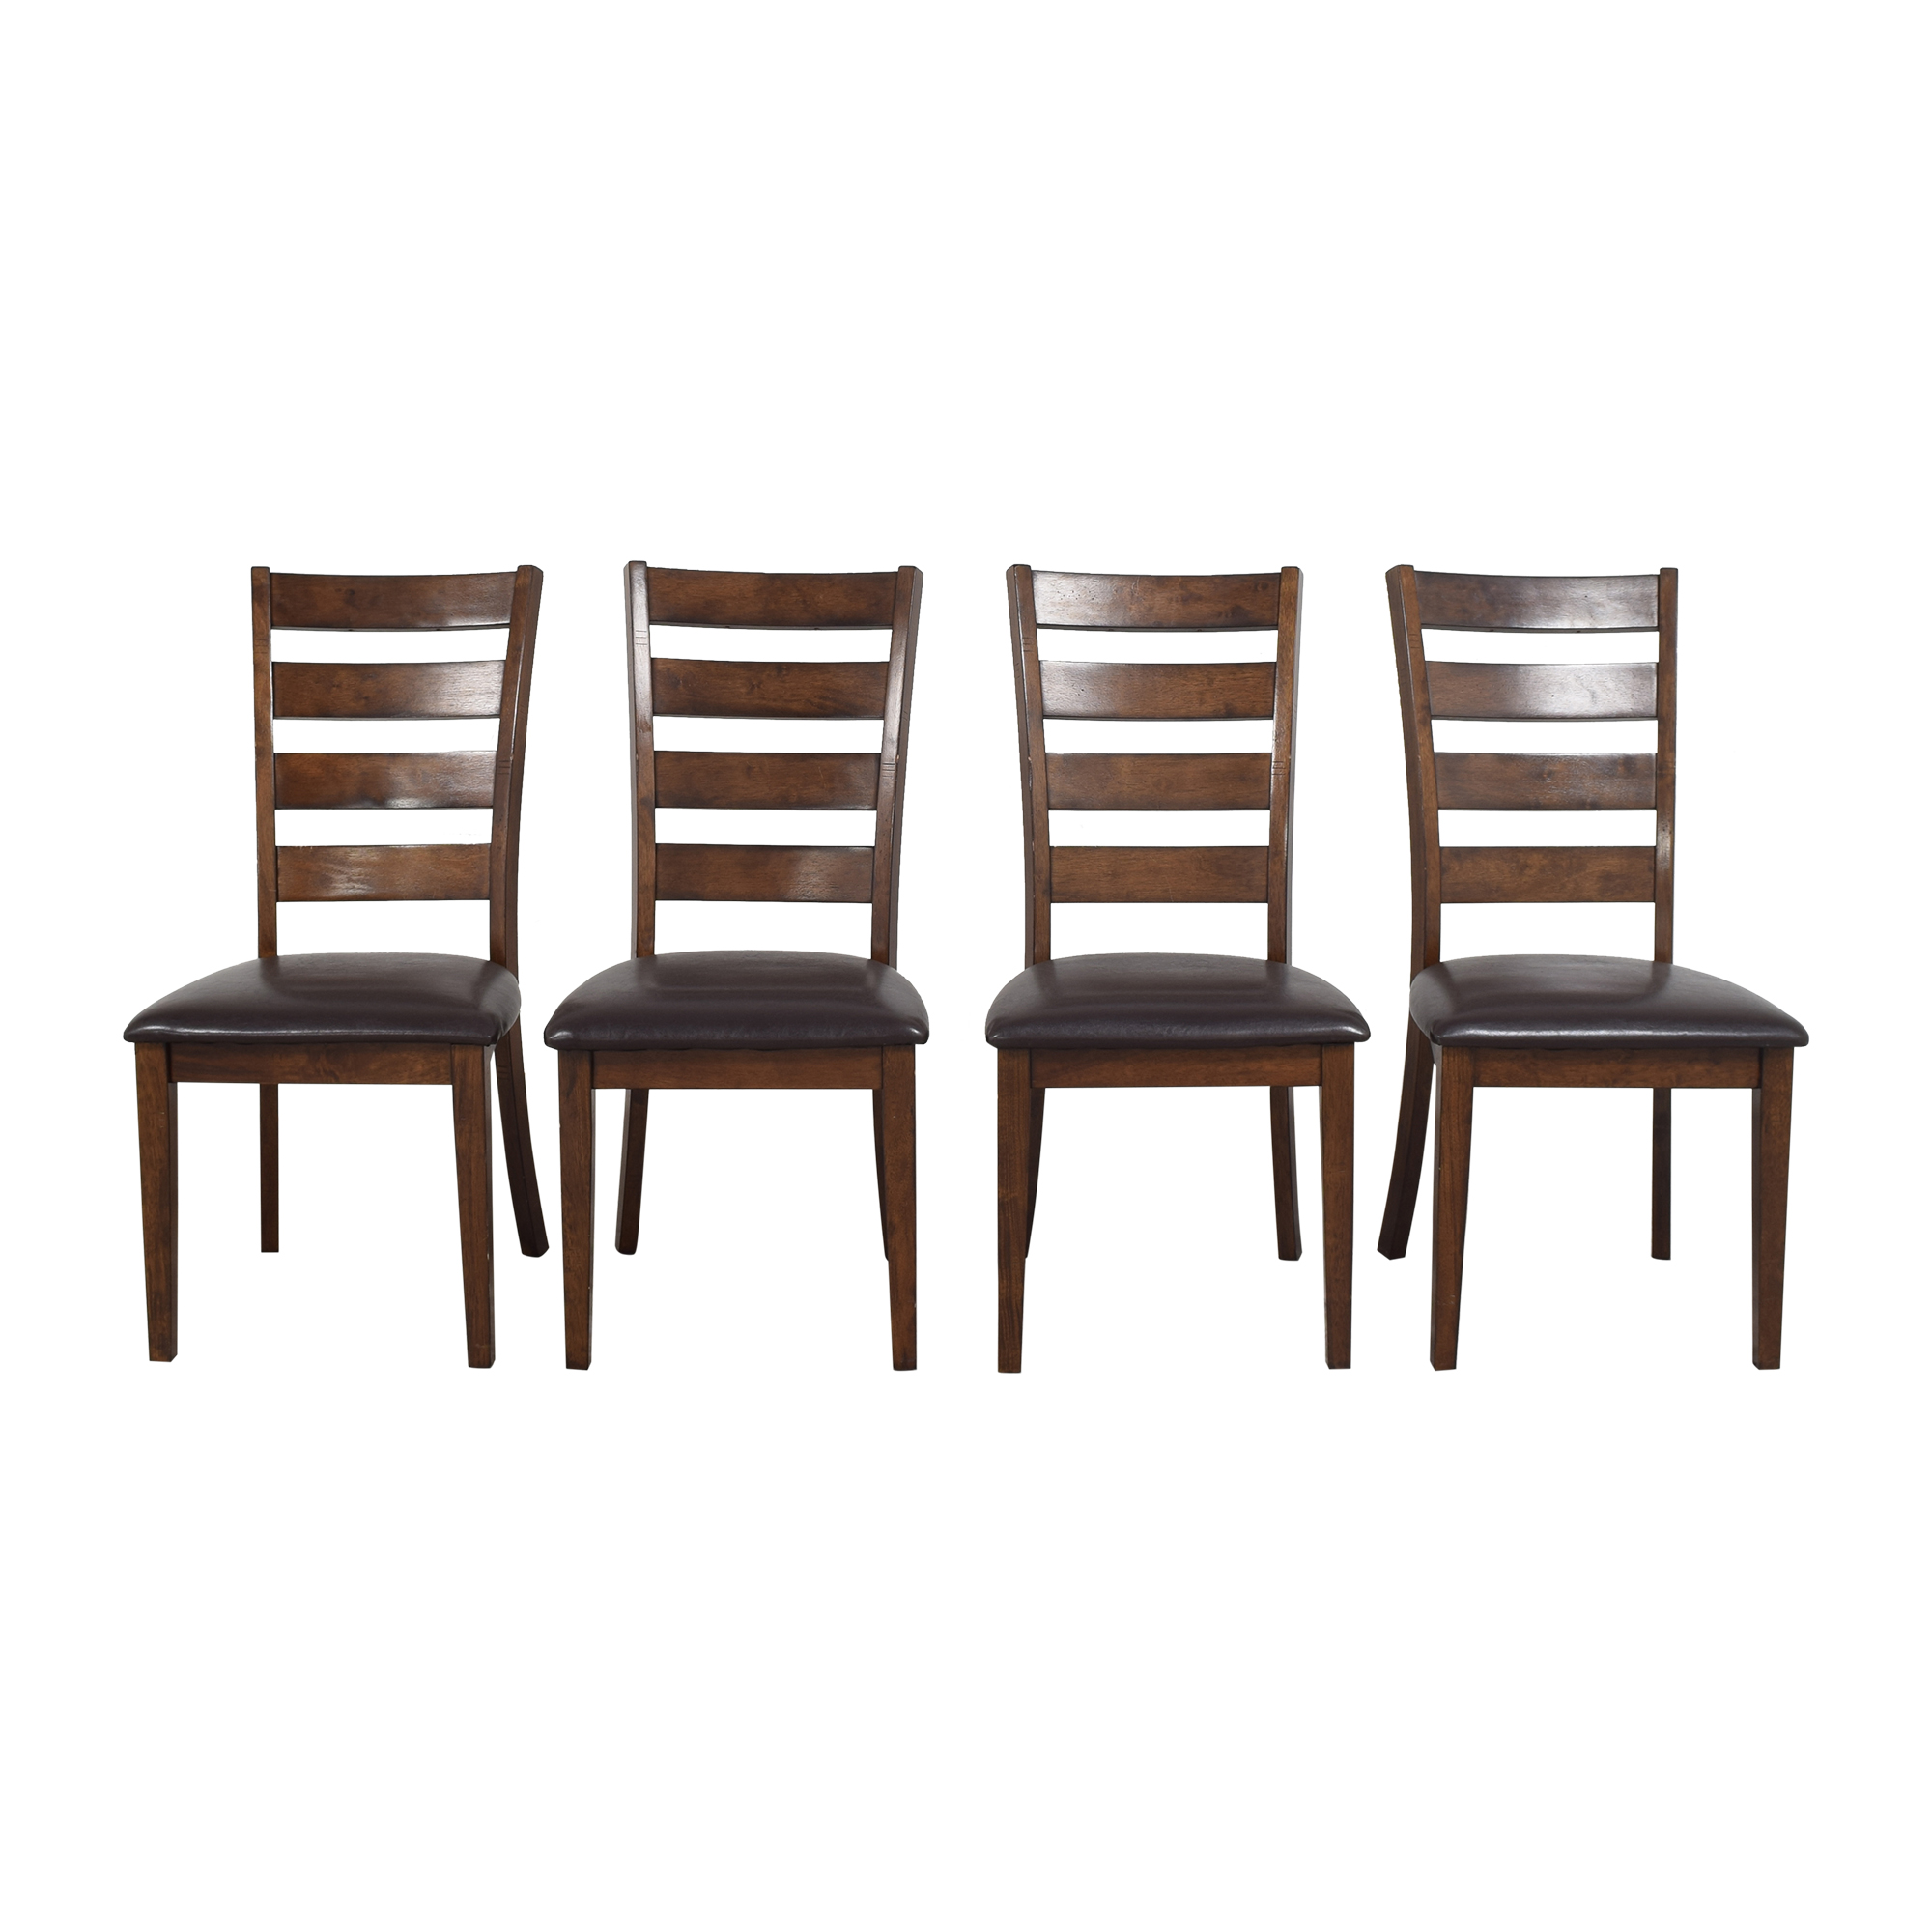 Raymour & Flanigan Raymour & Flanigan Ladder Back Dining Chairs